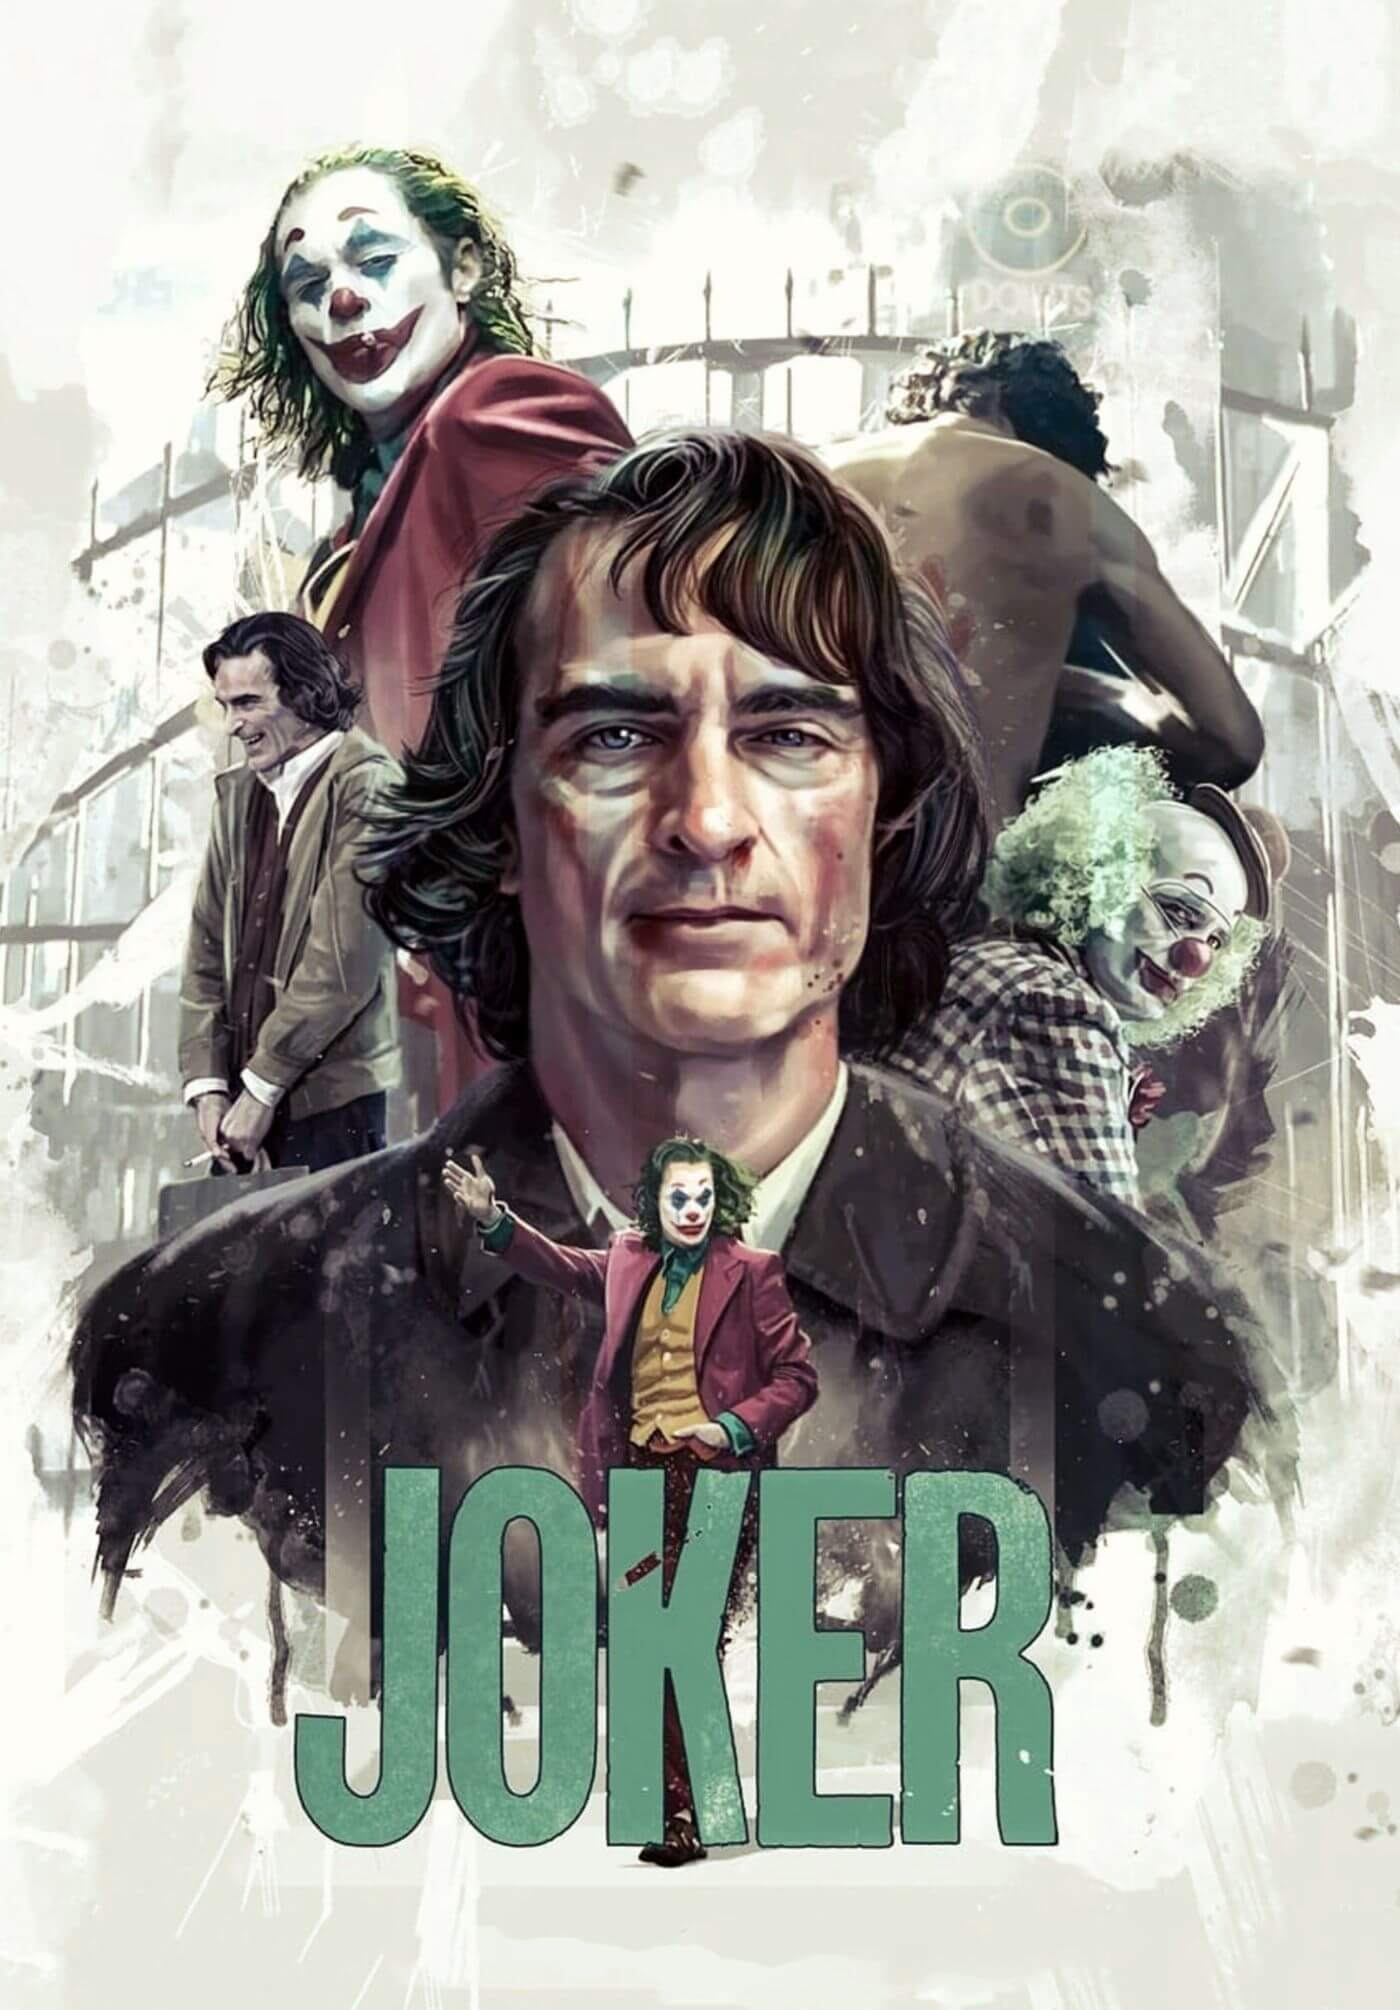 Joker Joaquin Phoenix Fan Art Hollywood English Action Movie Poster Posters By Brad Buy Posters Frames Canvas Digital Art Prints Small Compact Medium And Large Variants